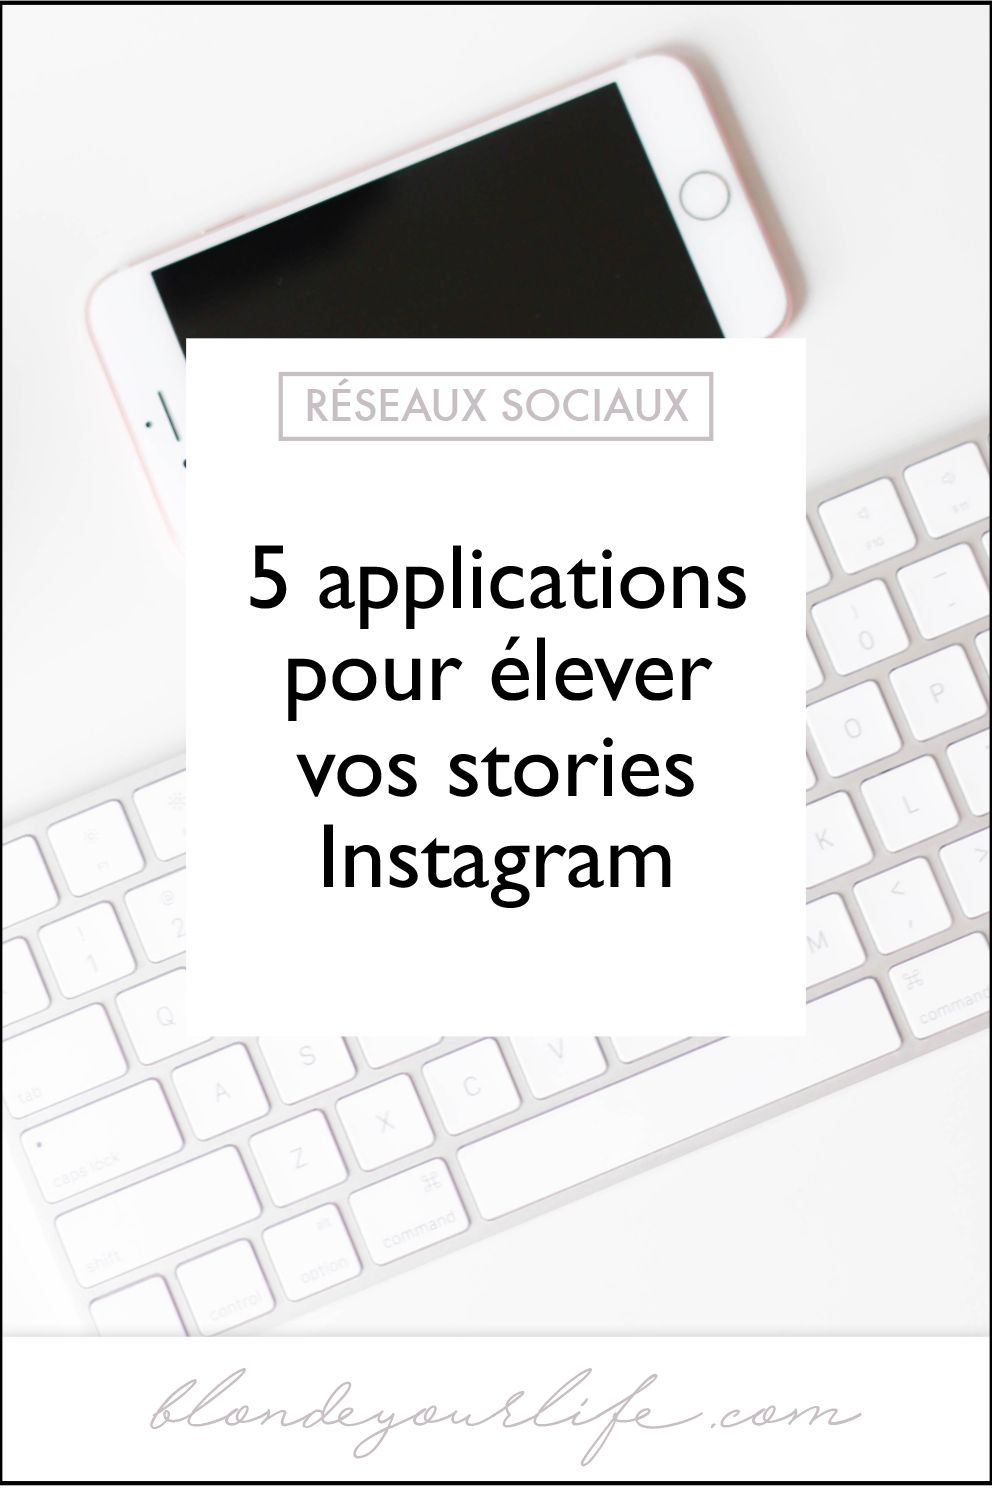 5 applications pour élever vos stories Instagram